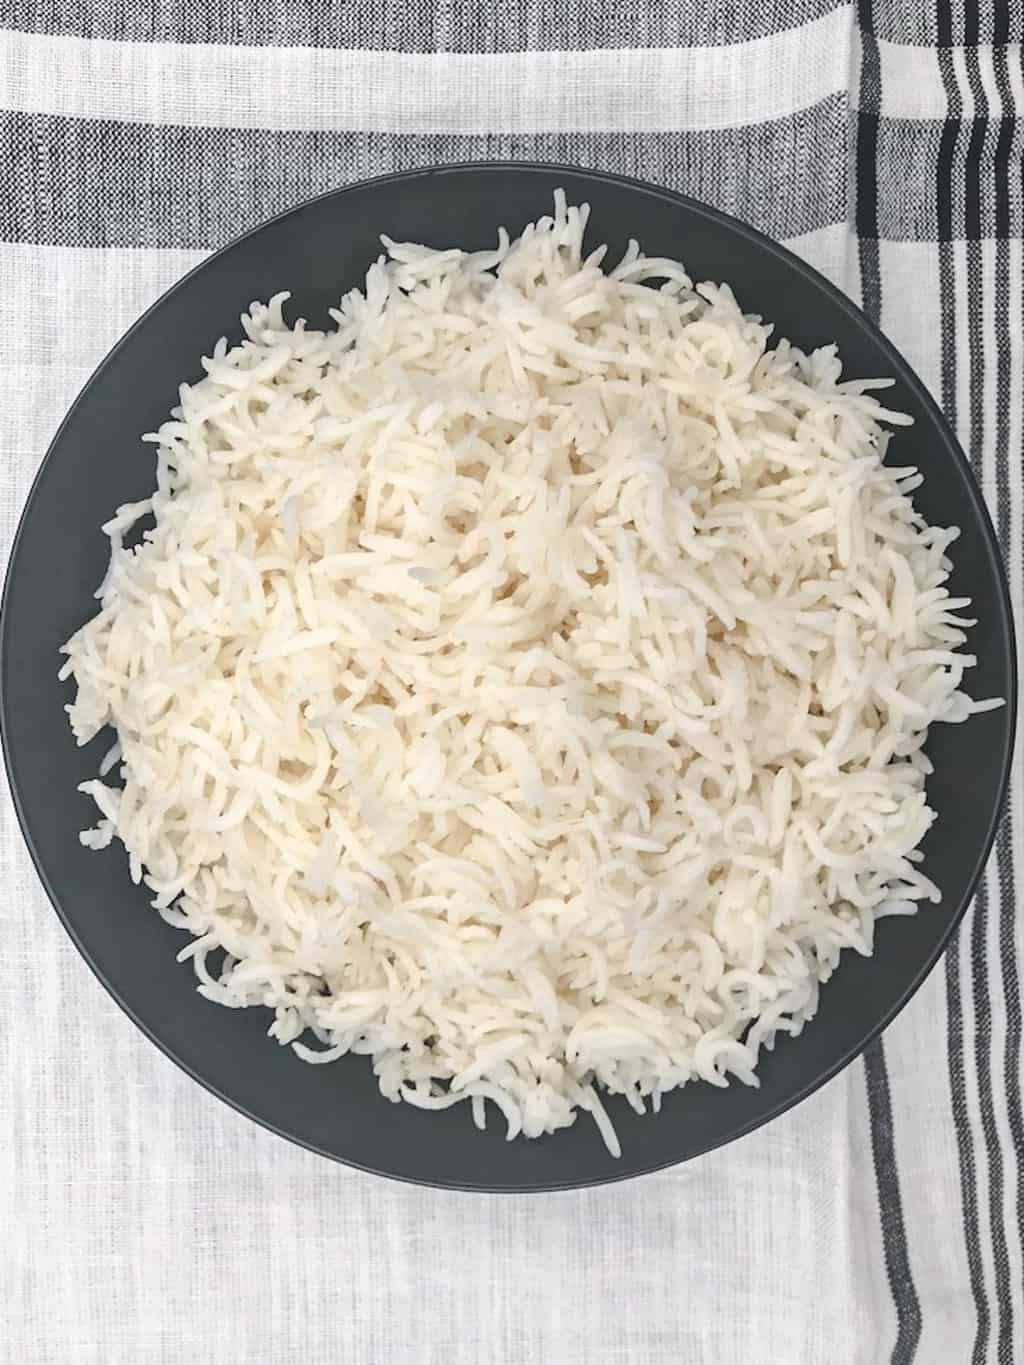 Basmati rice in a black bowl